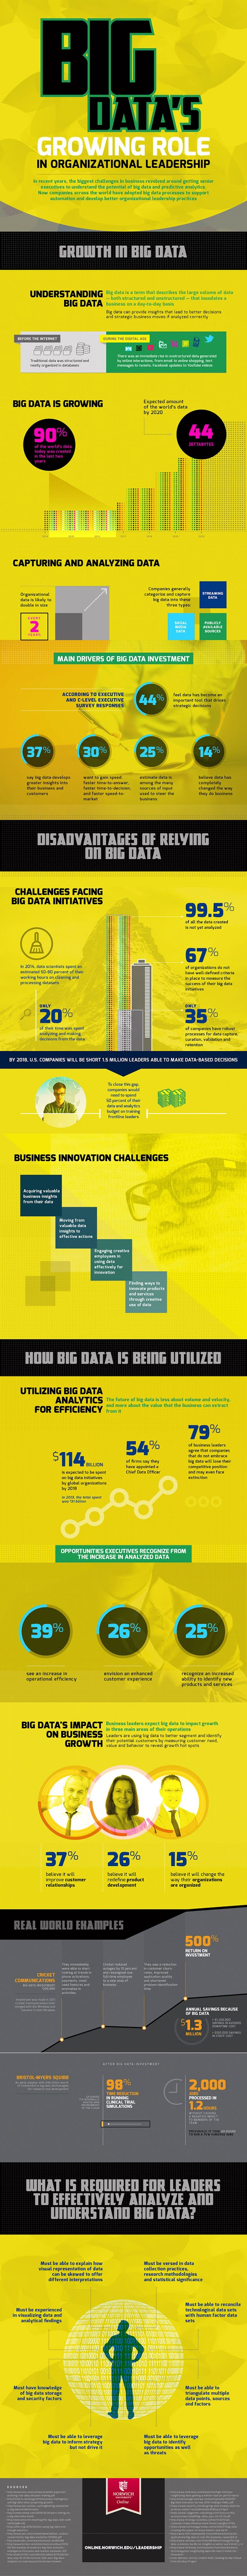 Big Data's Growing Role in Organizational Leadership #infographic